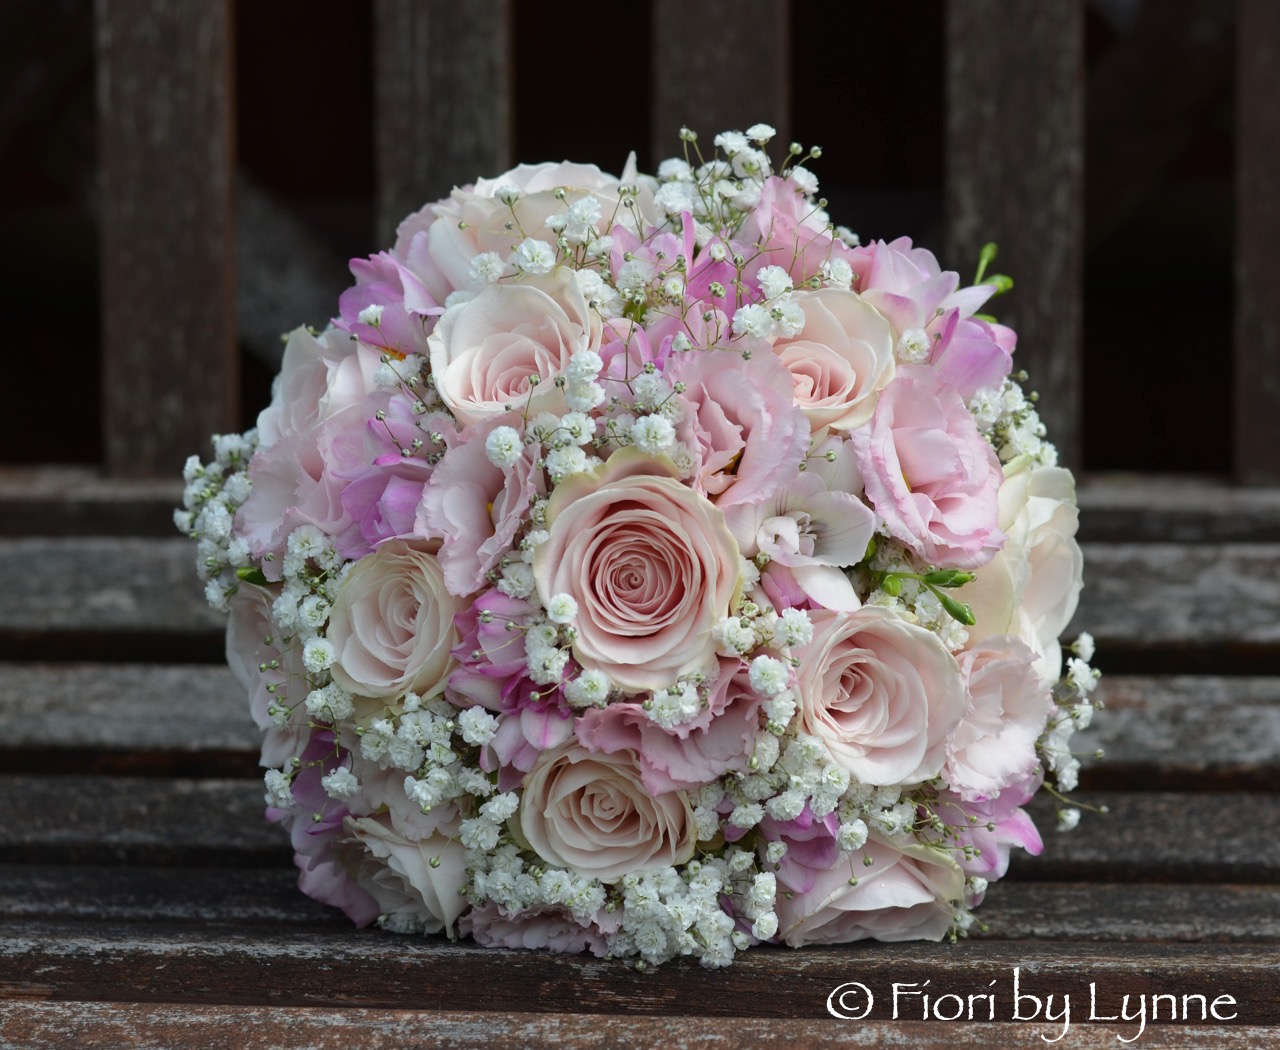 Wedding Flowers Blog: August 2015